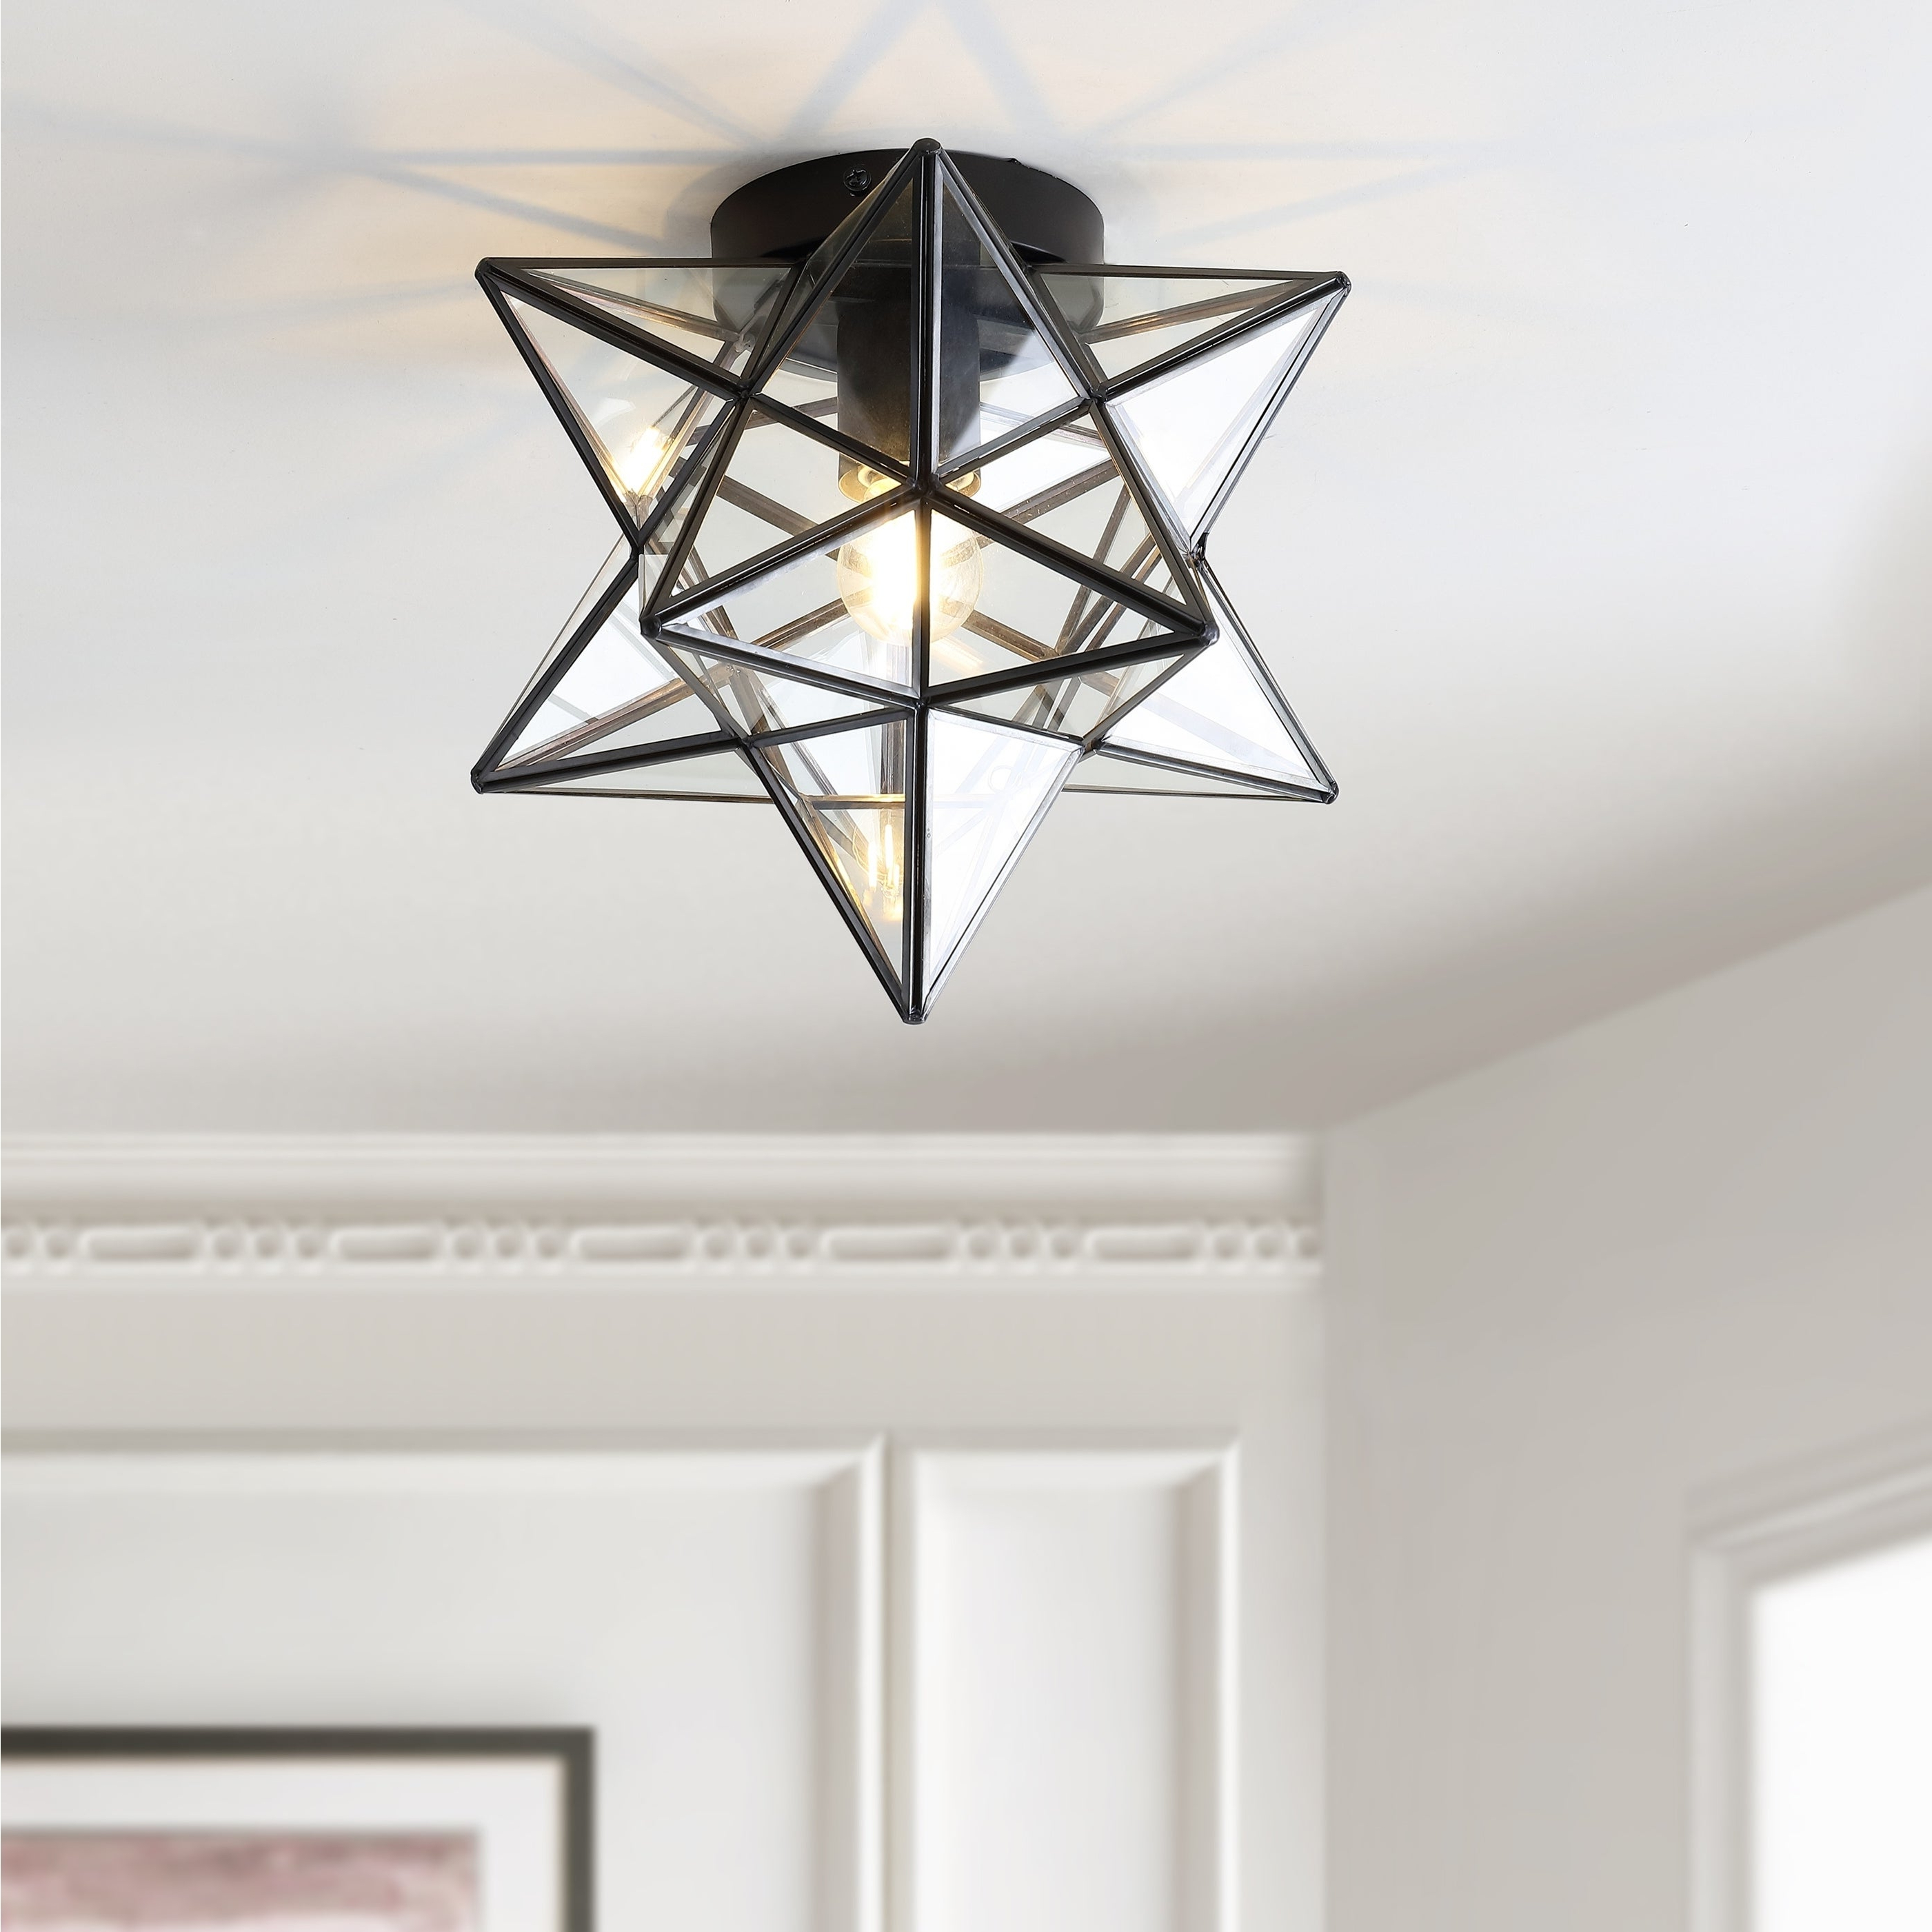 Find Great Ceiling Lighting Deals With Rossi Industrial Vintage 1 Light Geometric Pendants (Gallery 13 of 20)